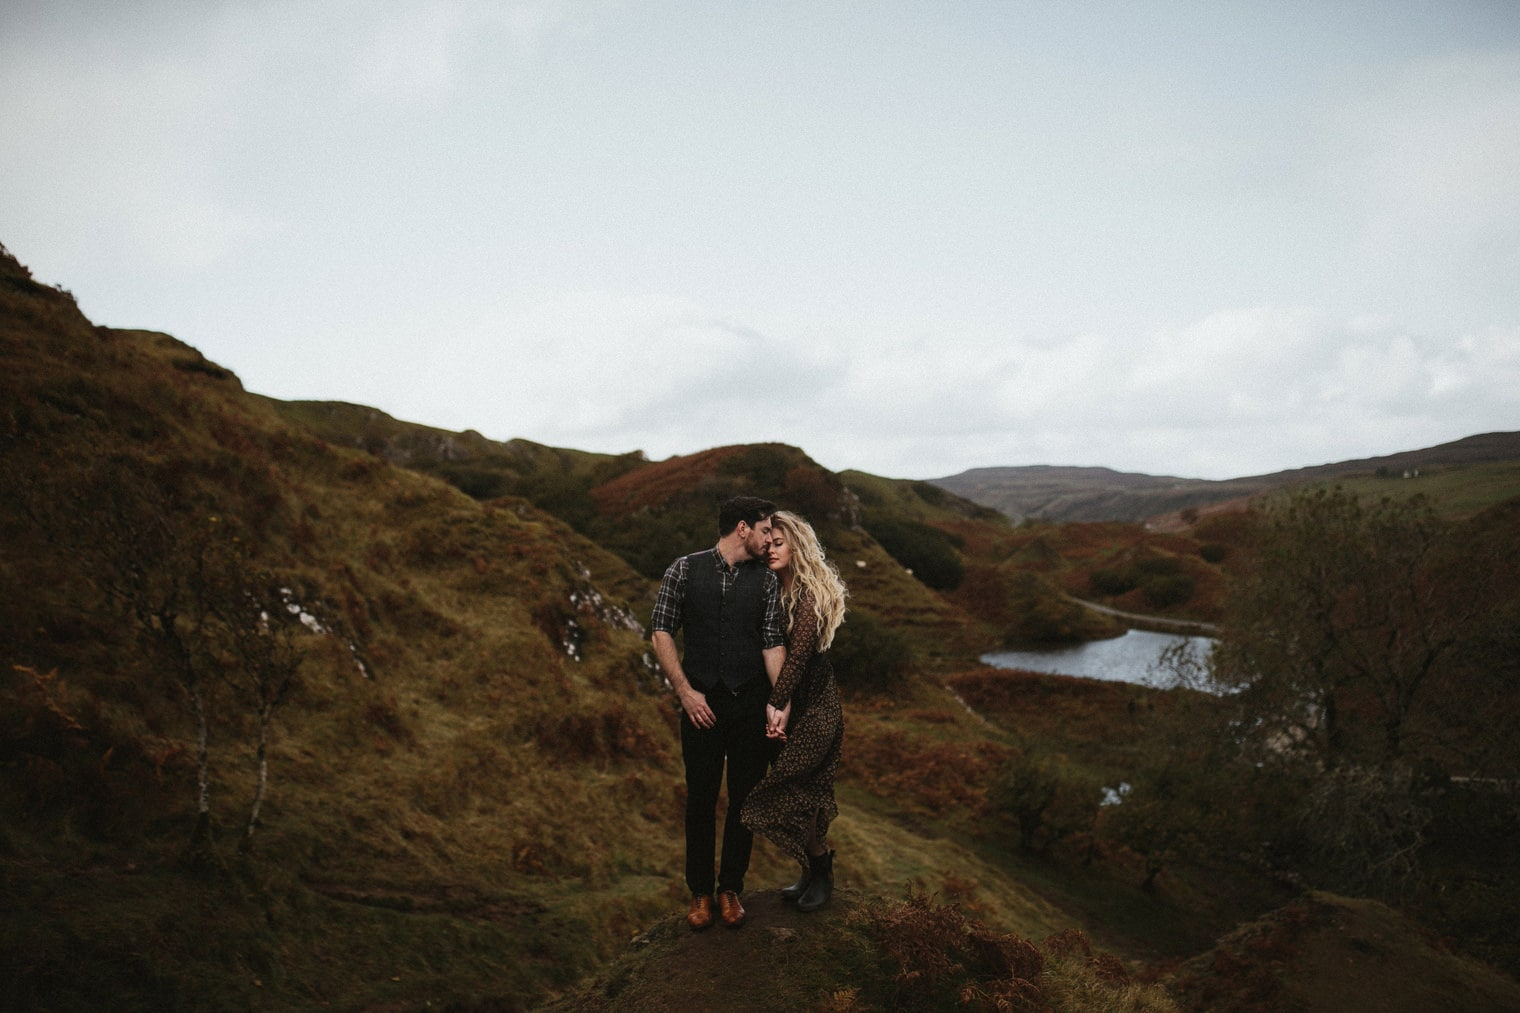 Couple standing together in The fairy glen during photoshoot for their anniversary